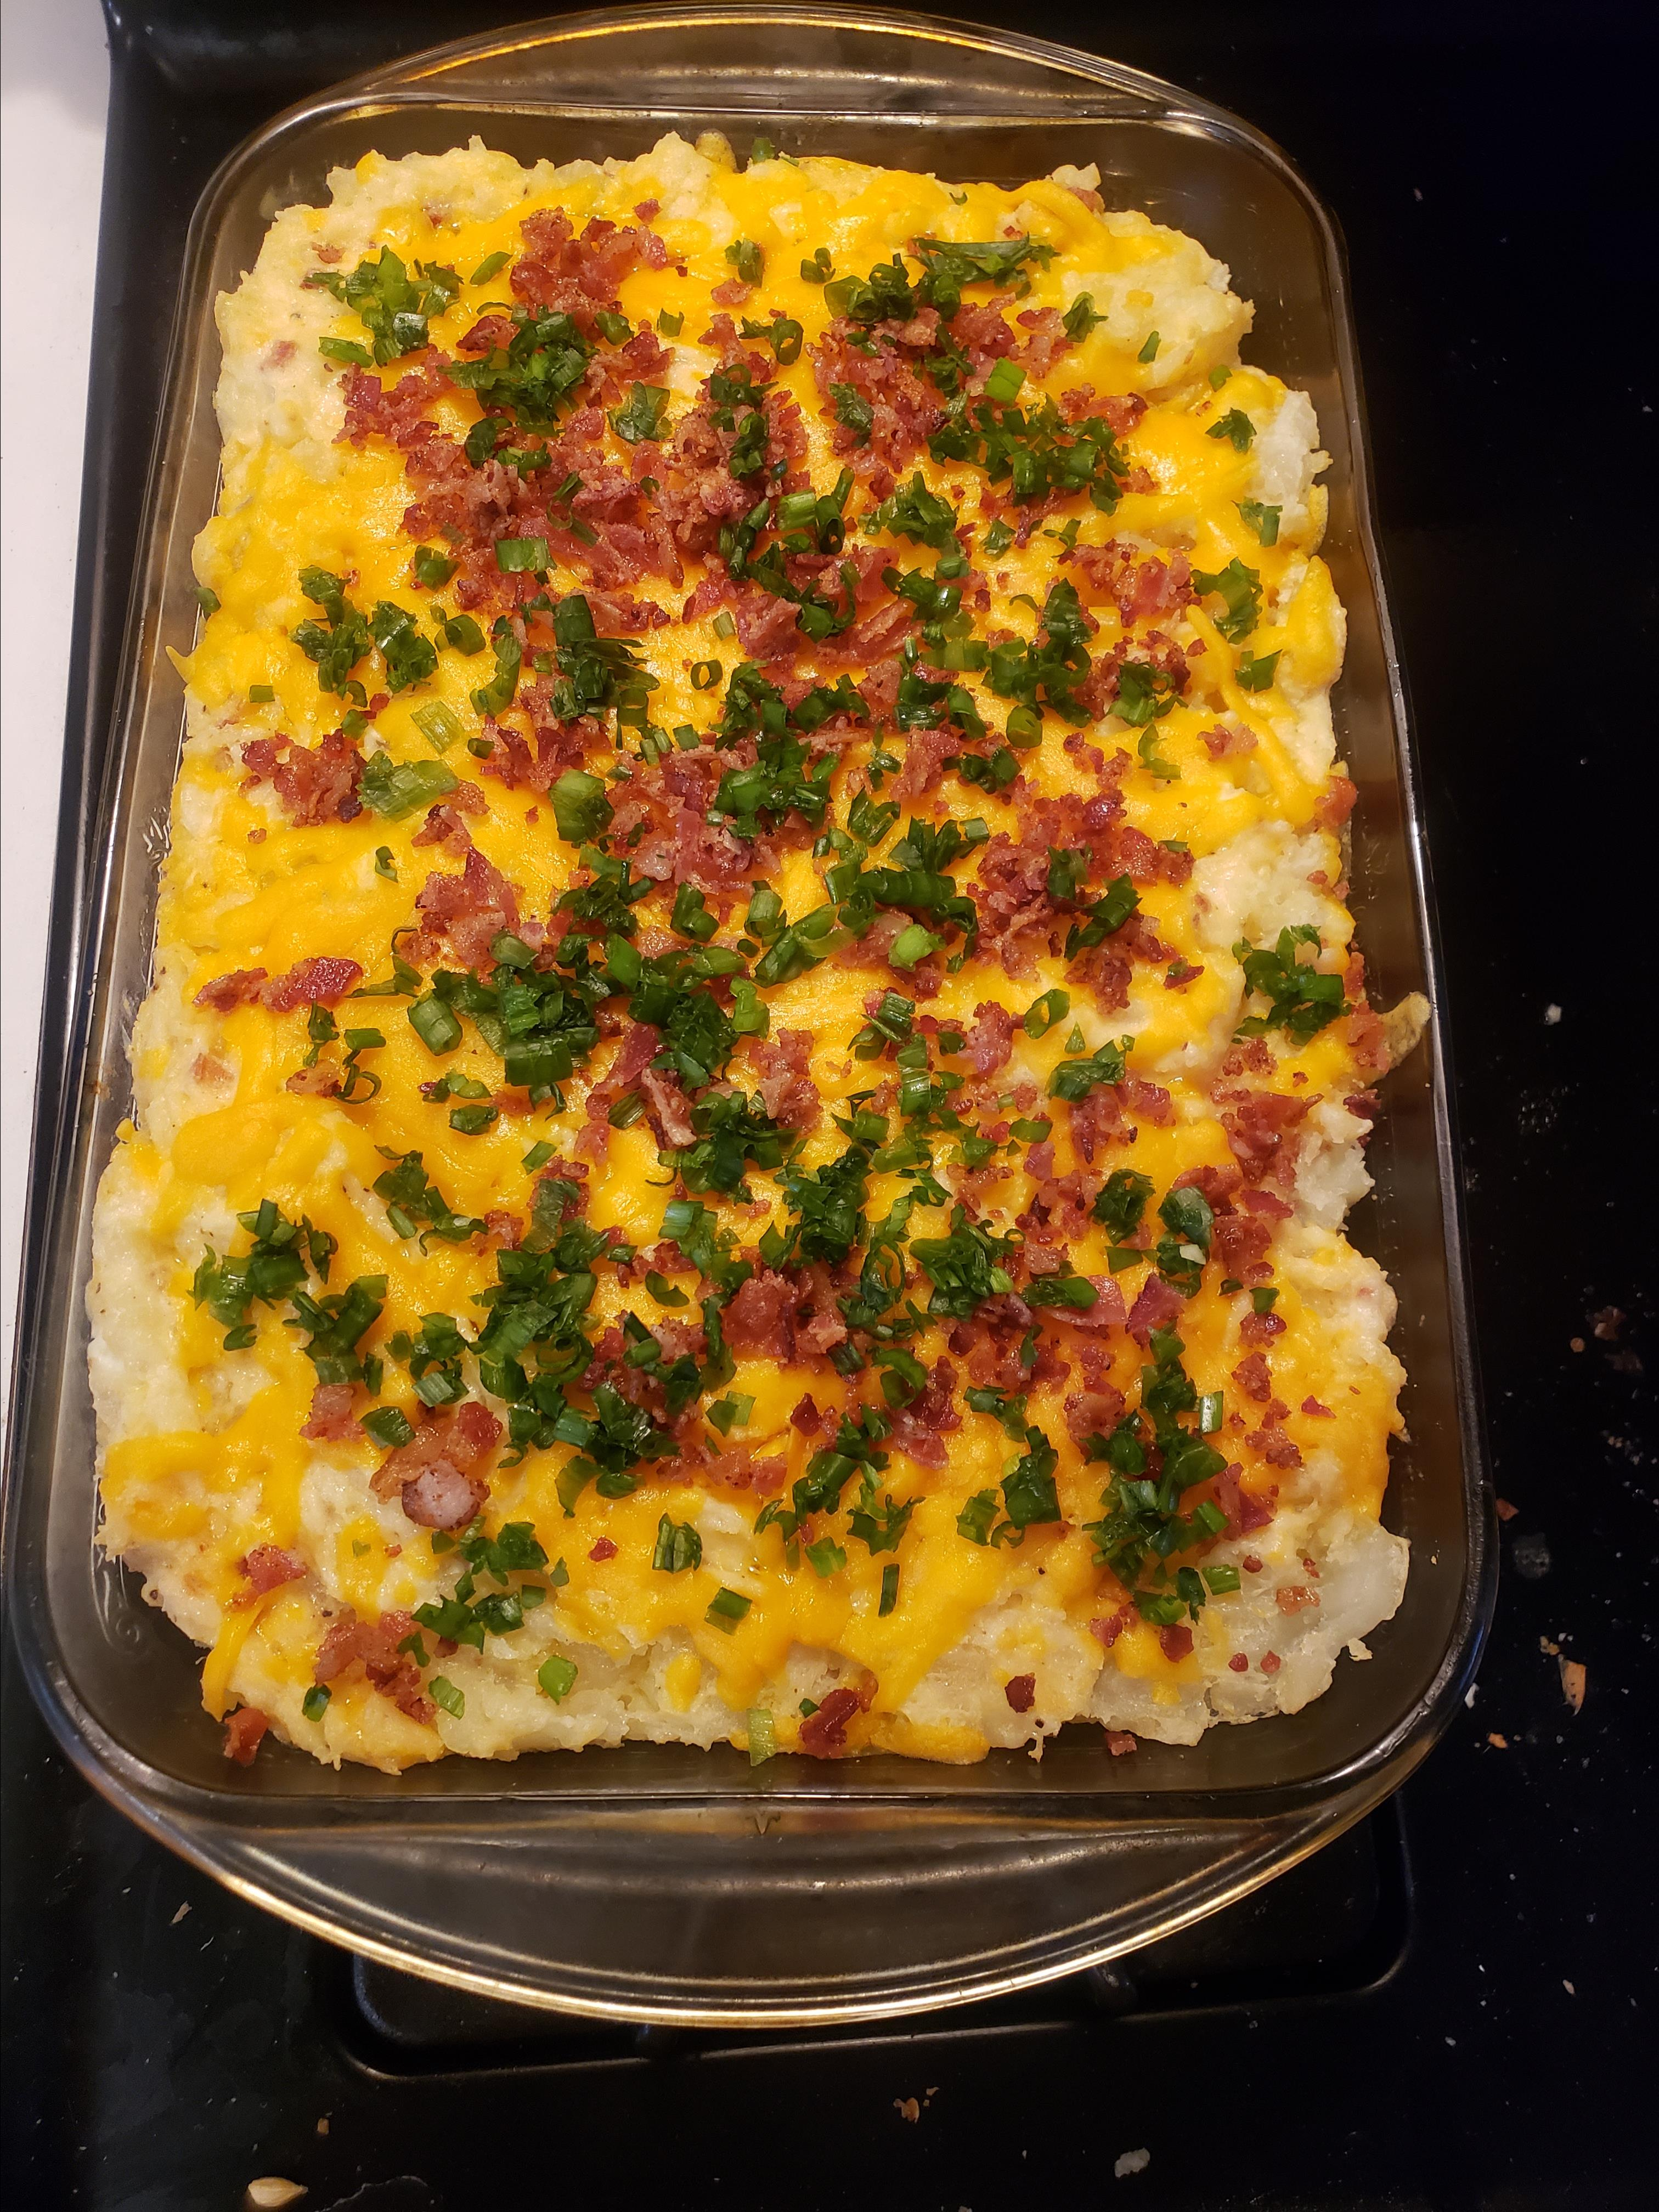 Garlic Mashed Potatoes with Roasted Garlic Cheddar and Bacon